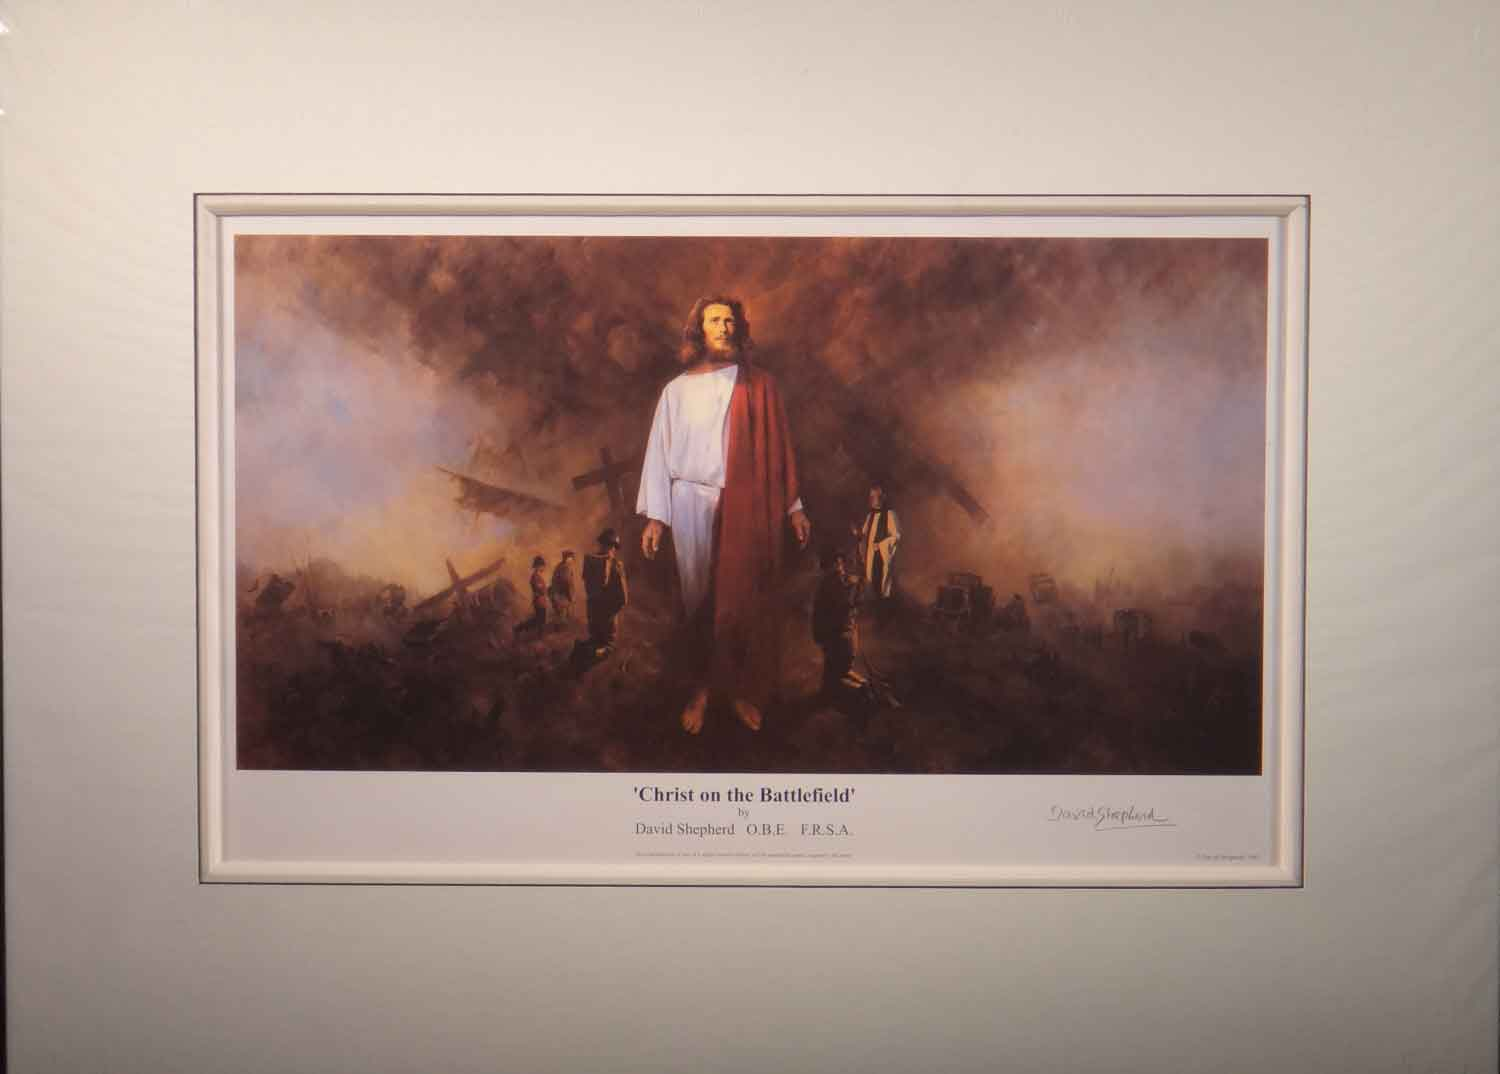 david shepherd, limimited edition print, Christ in the Battlefield